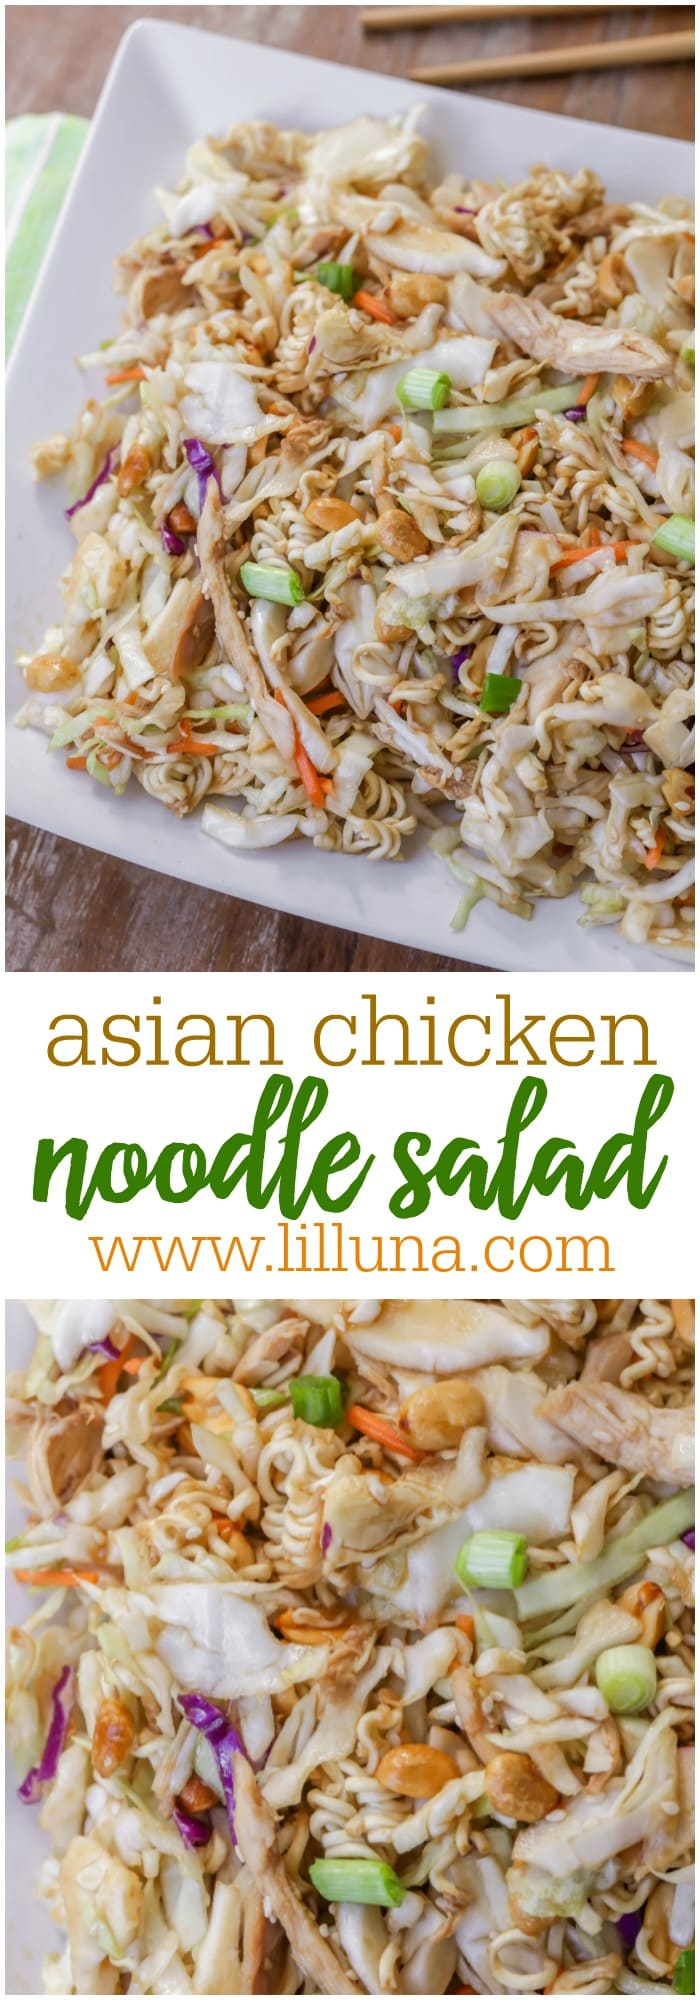 Asian Chicken Noodle Salad made with cabbage, ramen noodles, peanuts, chicken and topped with a homemade sesame dressing.